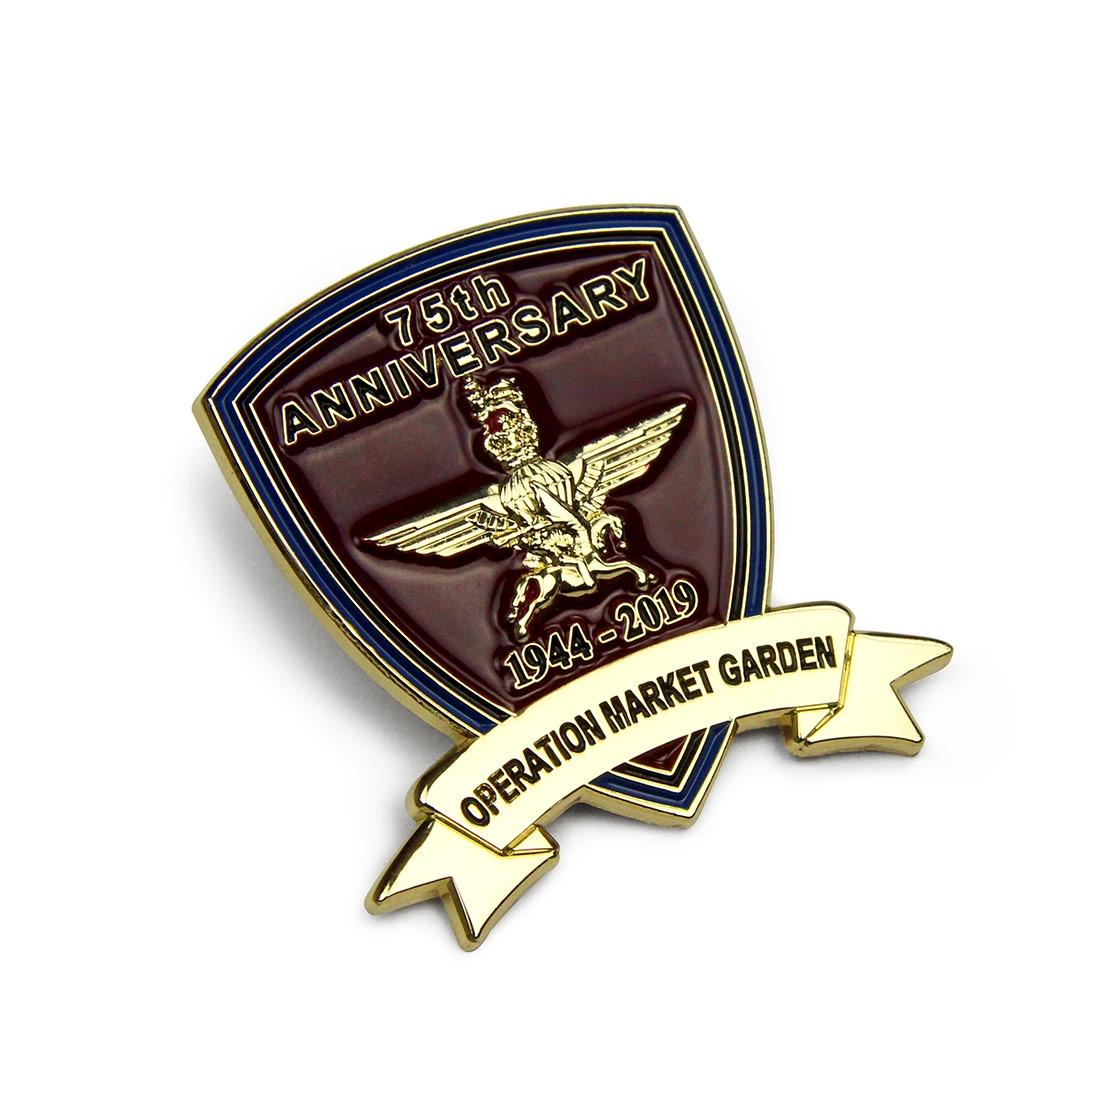 Operation Market Garden 75th Anniversary Lapel Badge